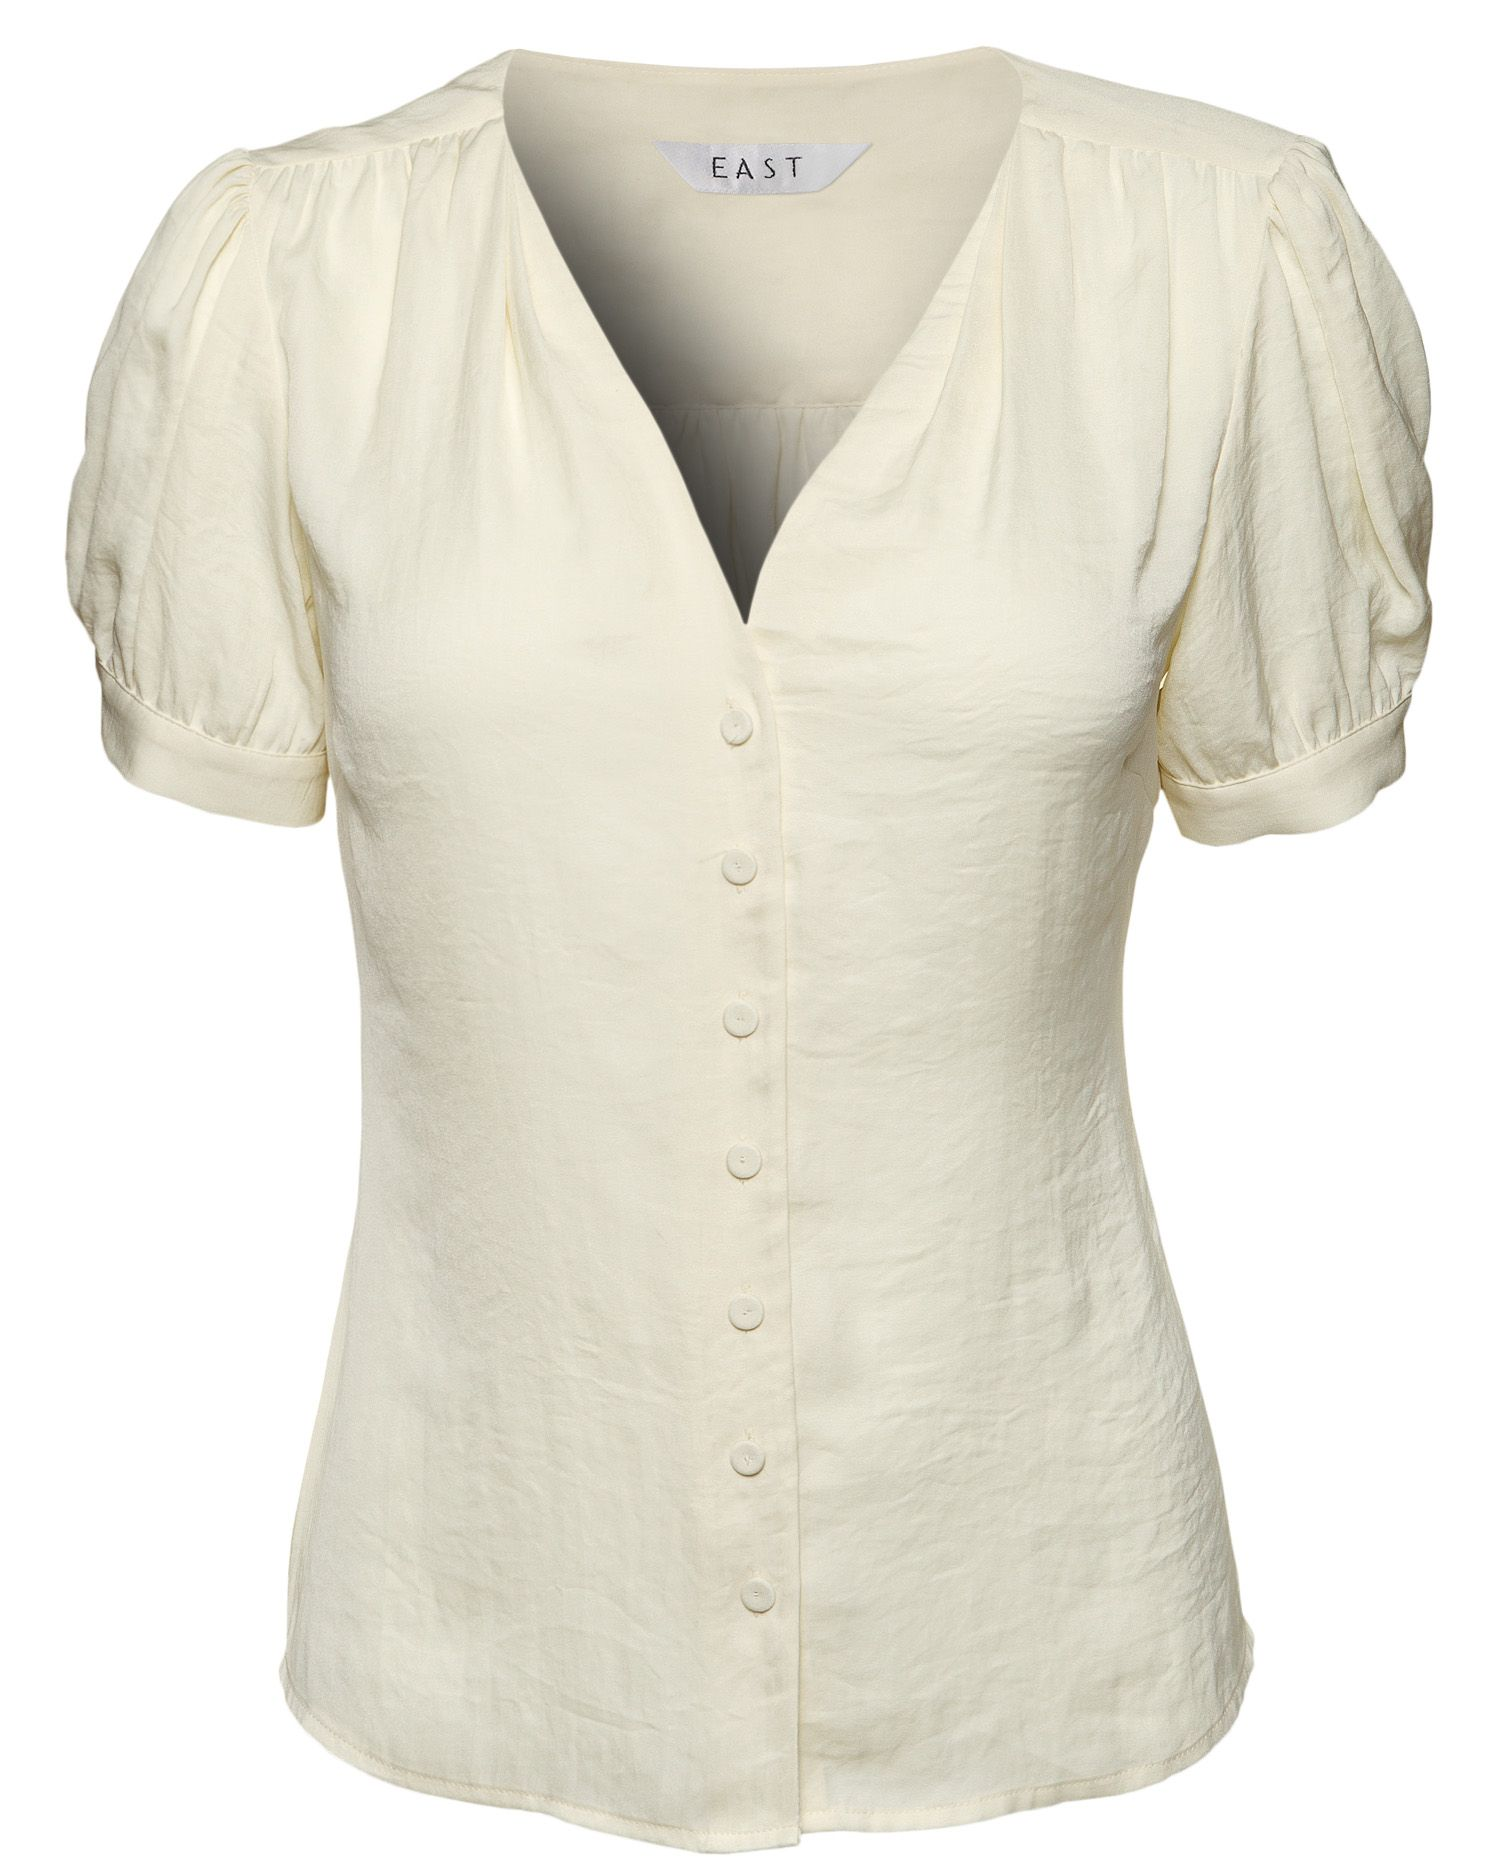 East Womens East Jameila plain blouse, Ivory product image